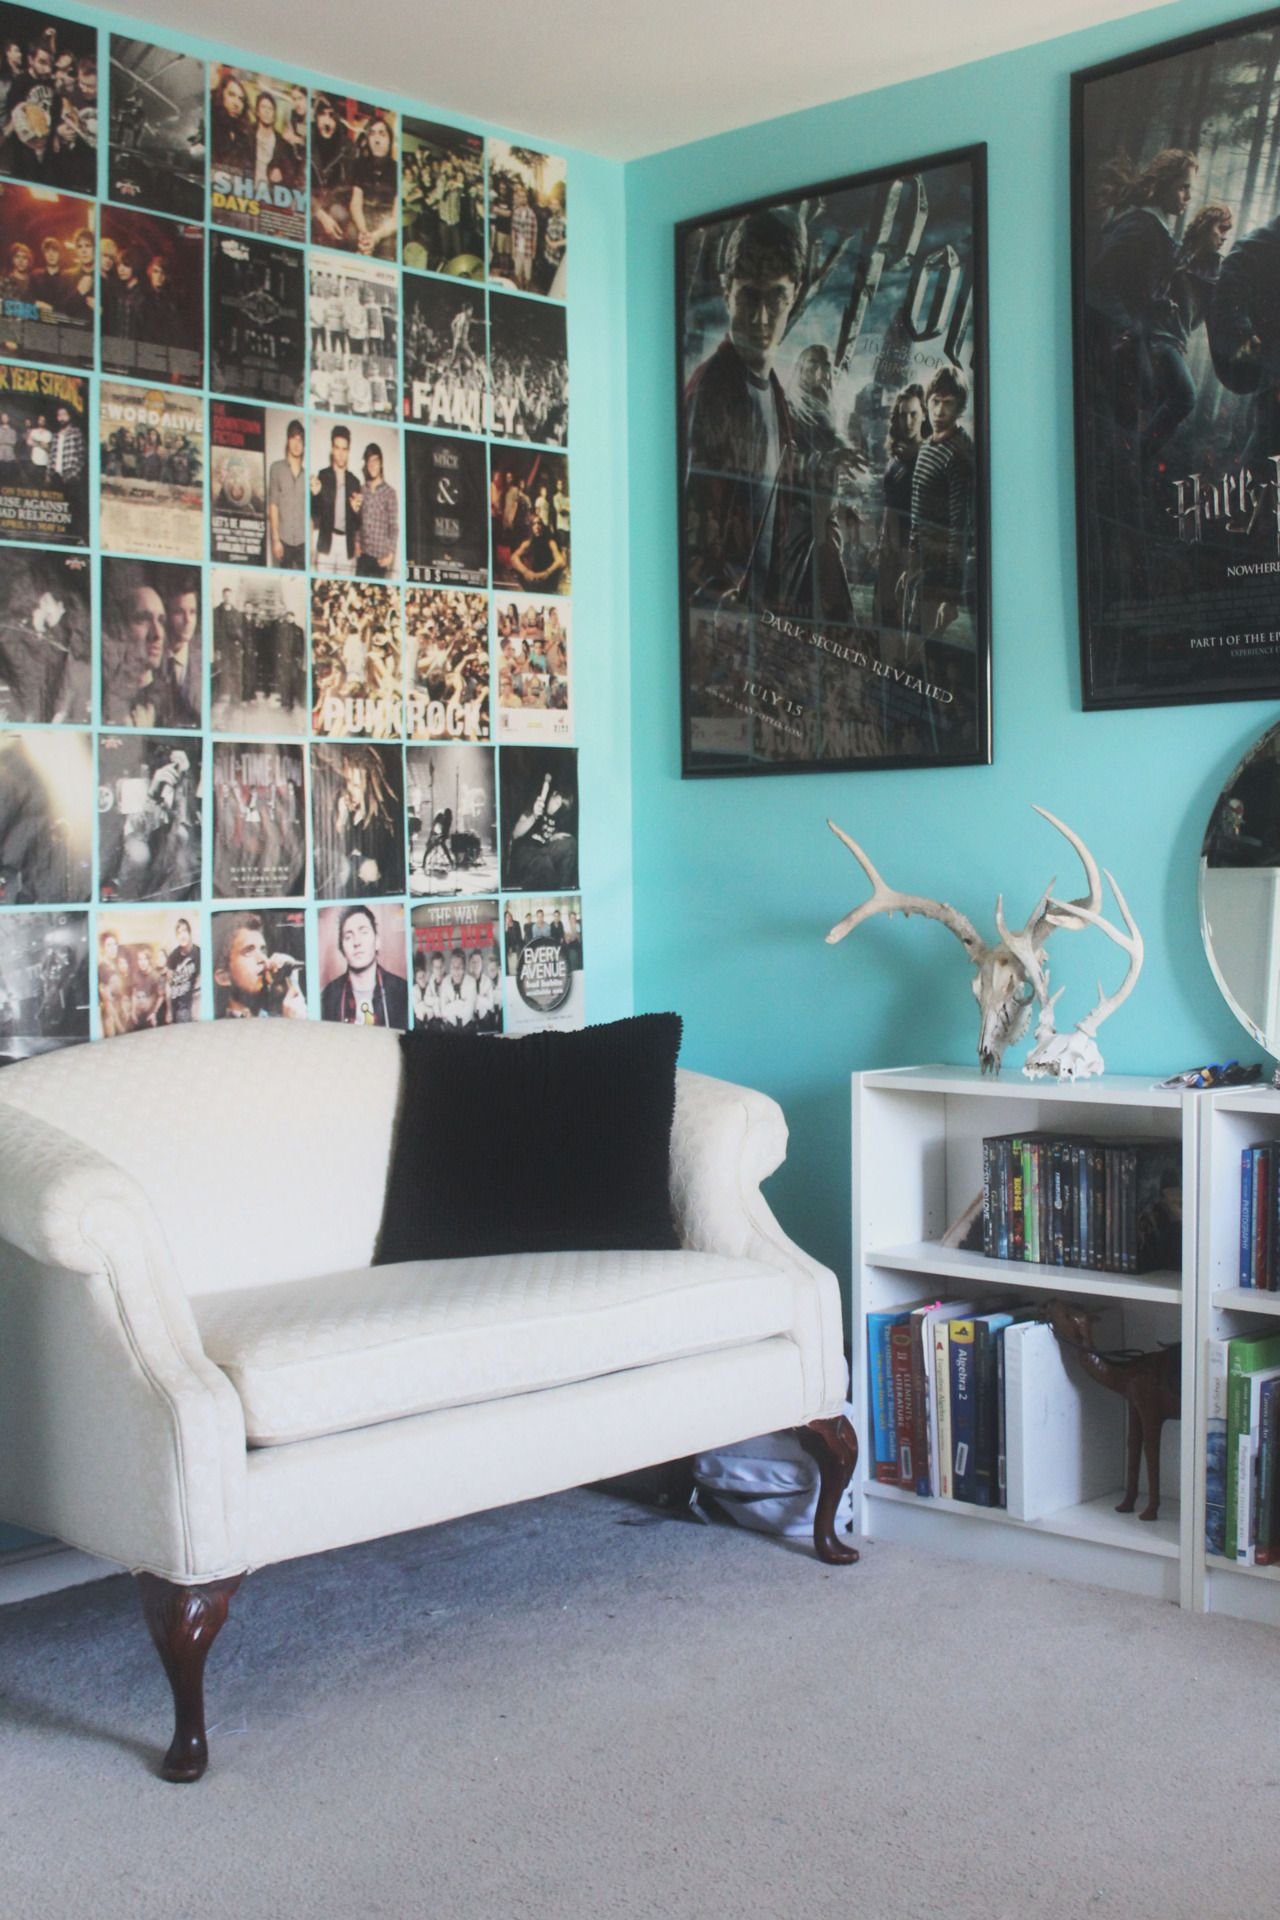 Bedroom wall with posters - If Teenagers Need To Hang Poster On Their Walls Frame Them Or Create An Interesting Display